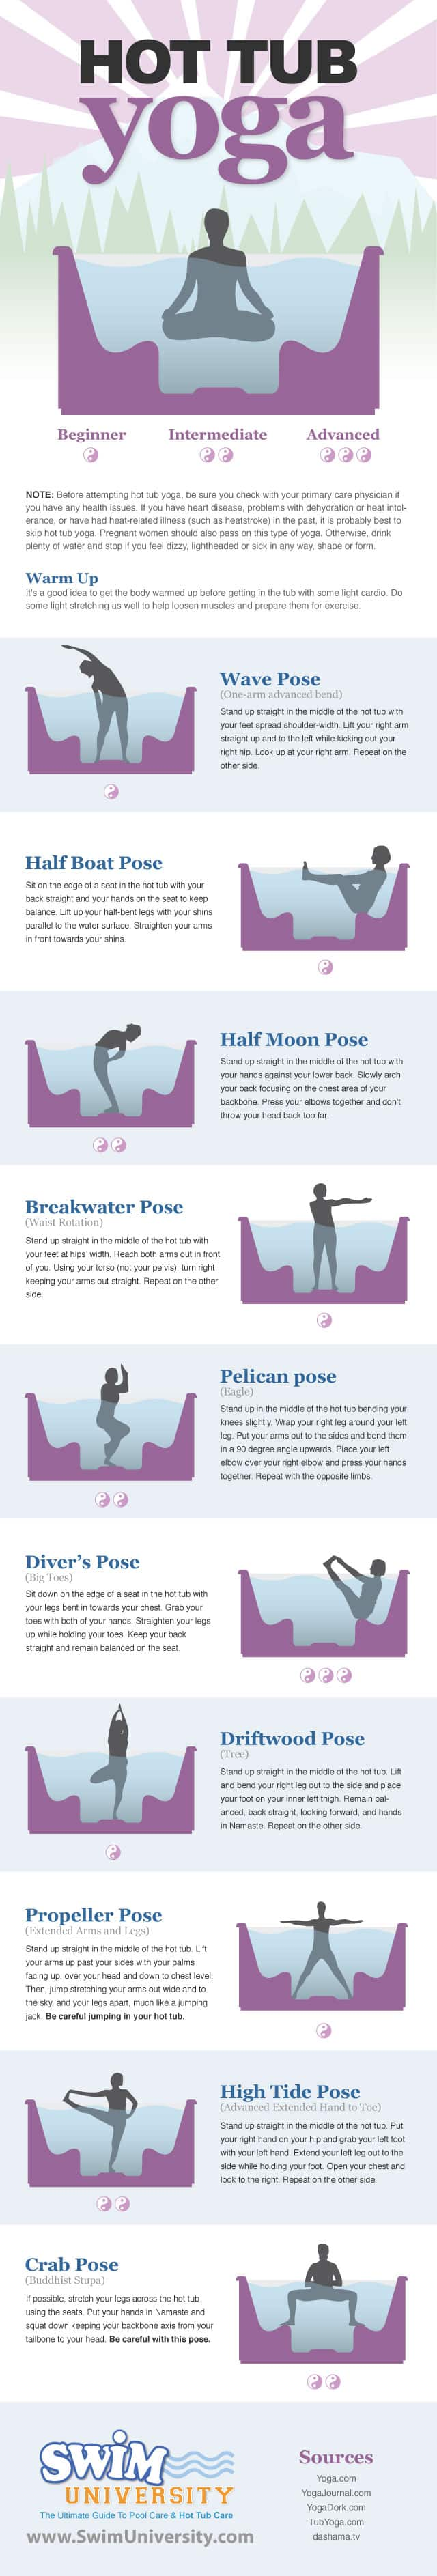 Hot Tub Yoga Infographic